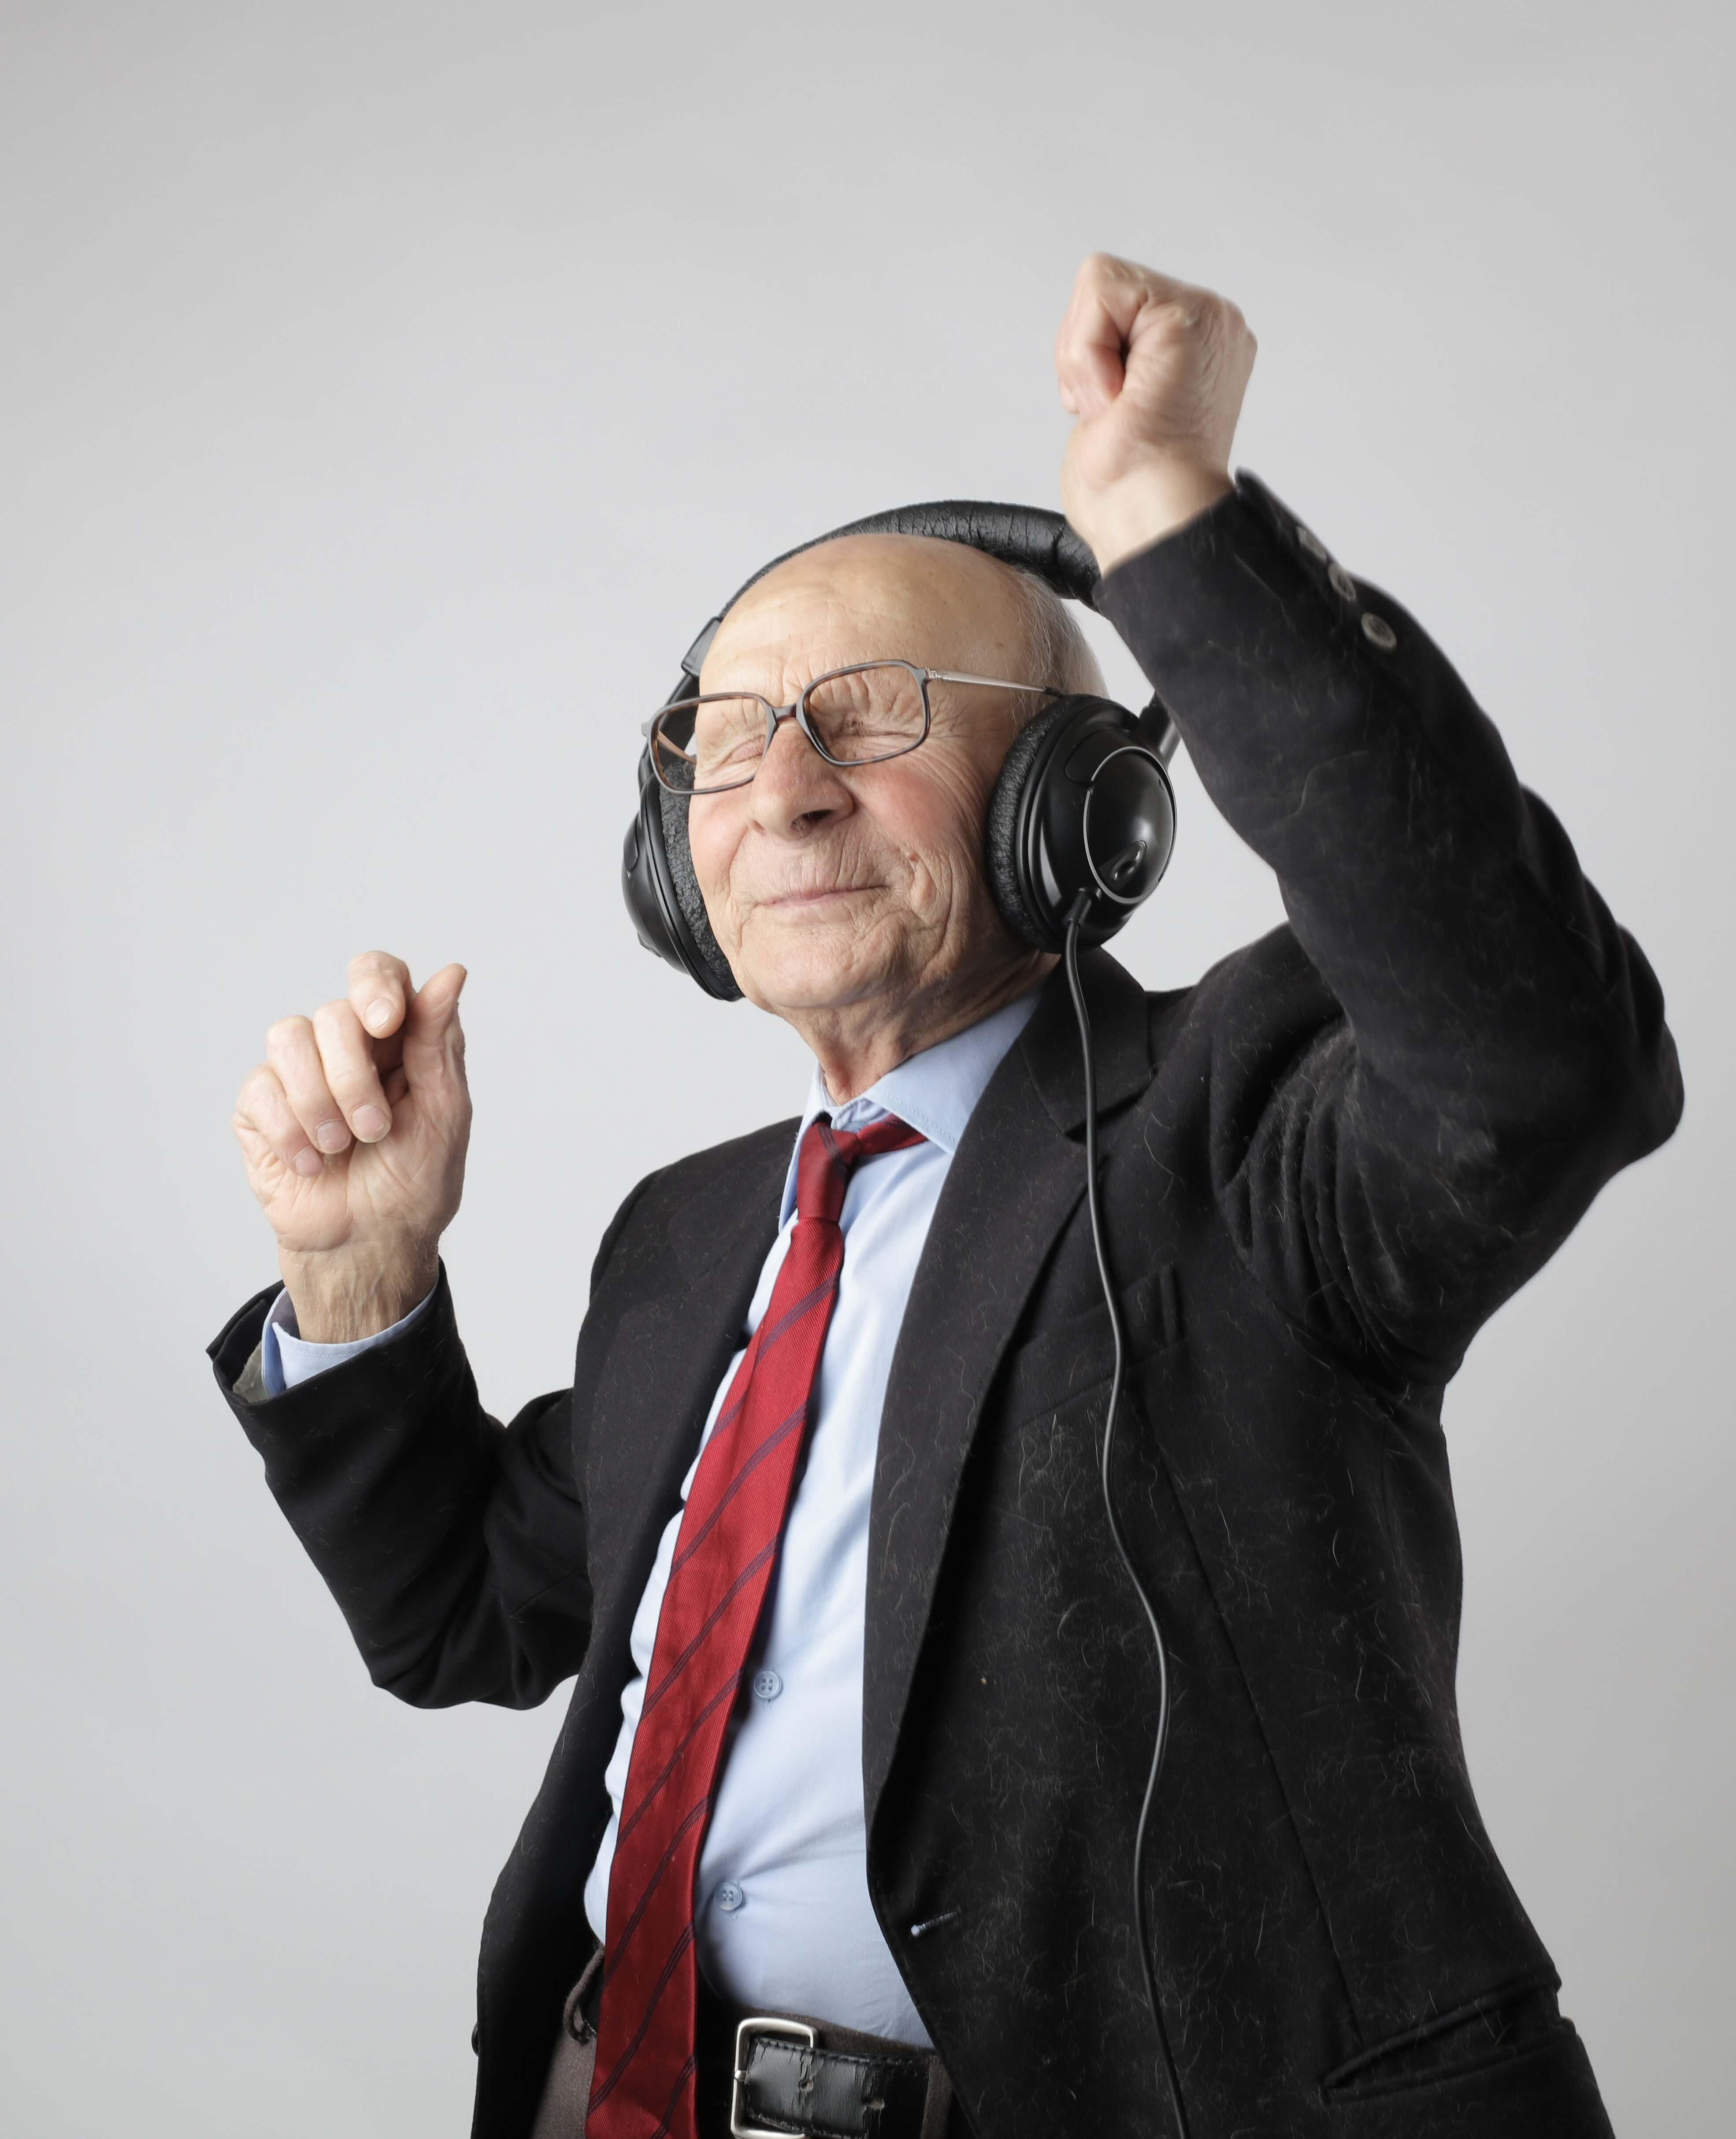 an old man listening music happily